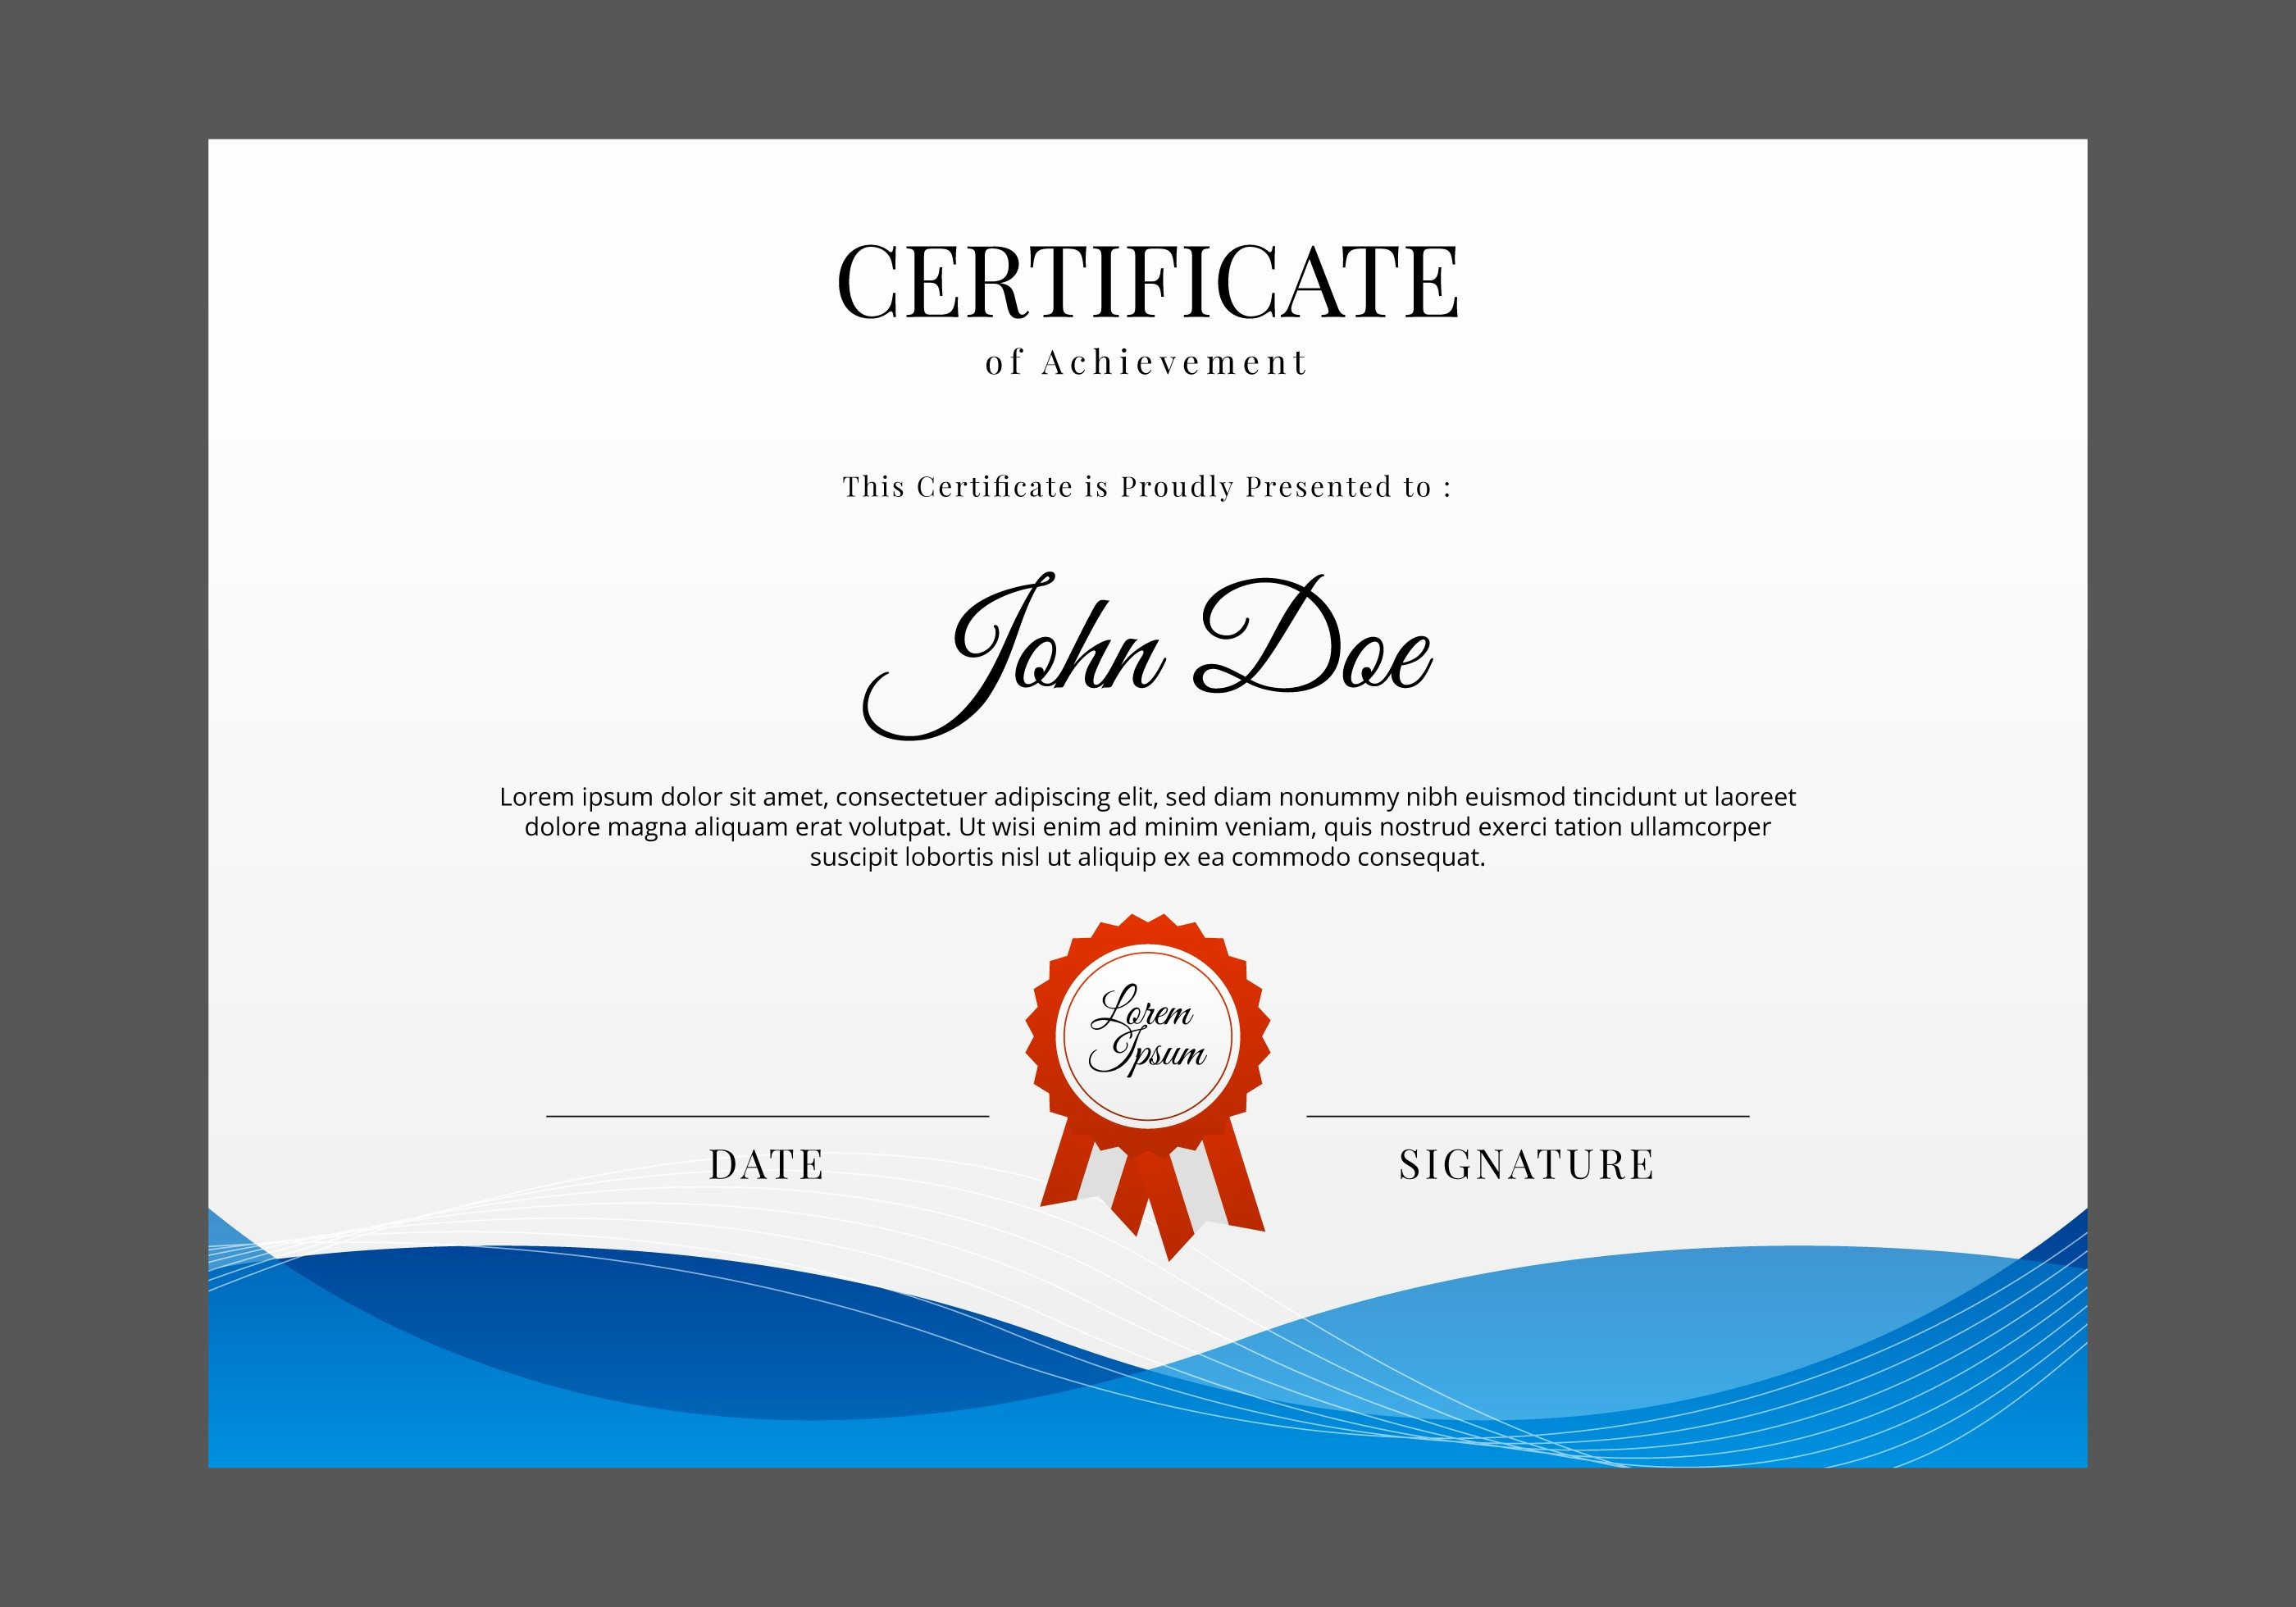 Training Certificate Template Free Download Beautiful Certificate Template Free Vector Art Free Downloads